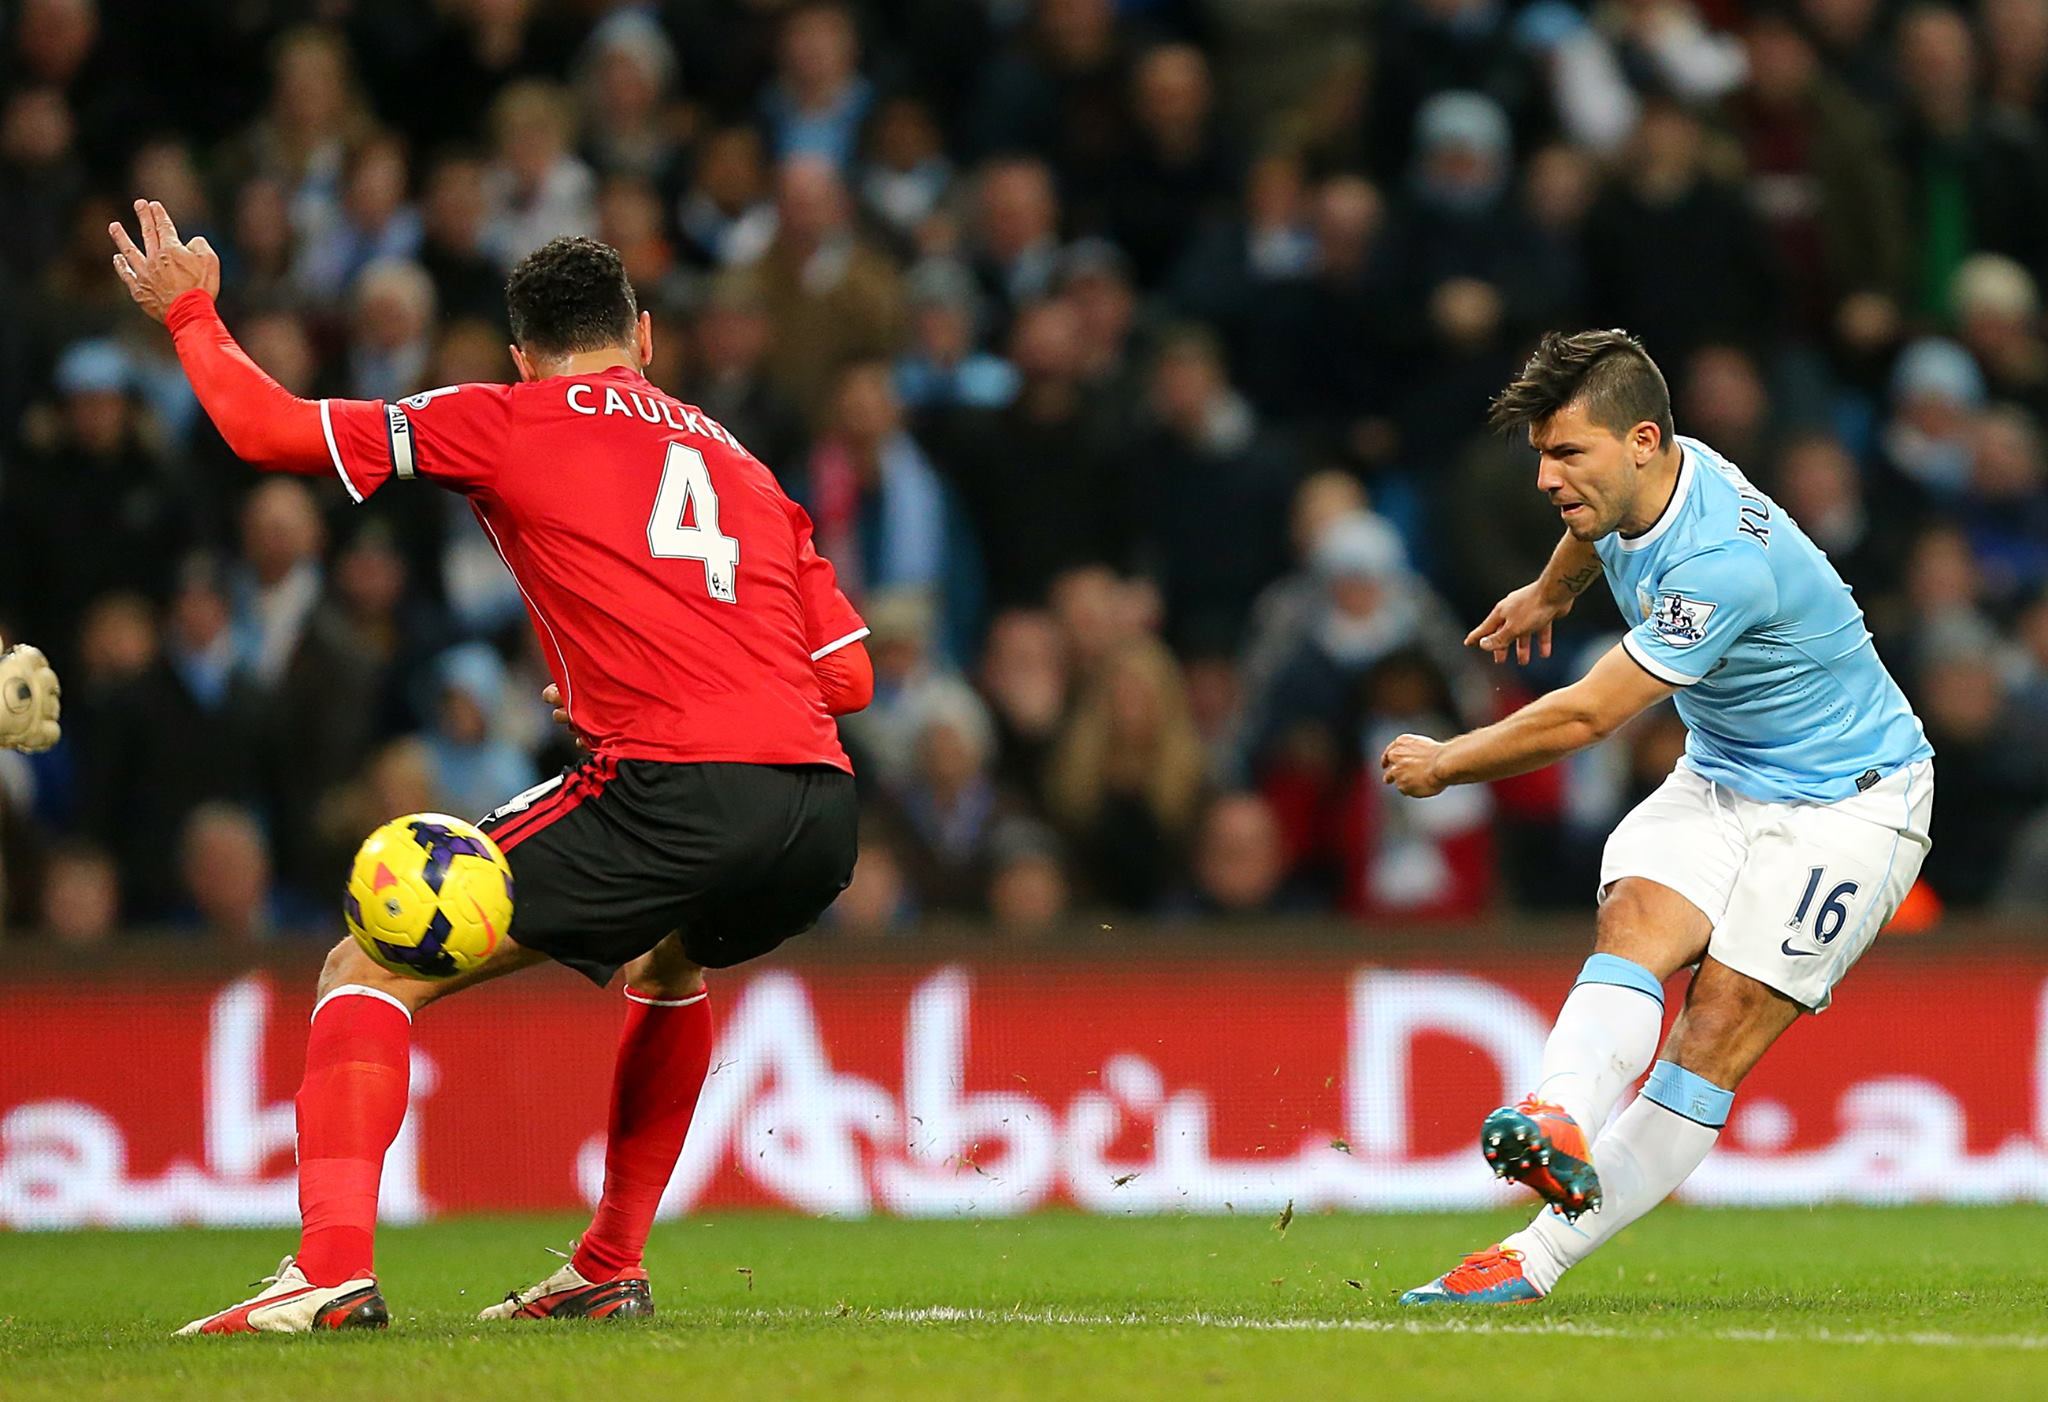 Swashbuckling Sergio - one for all and all 4-1  Courtesy @MCFC